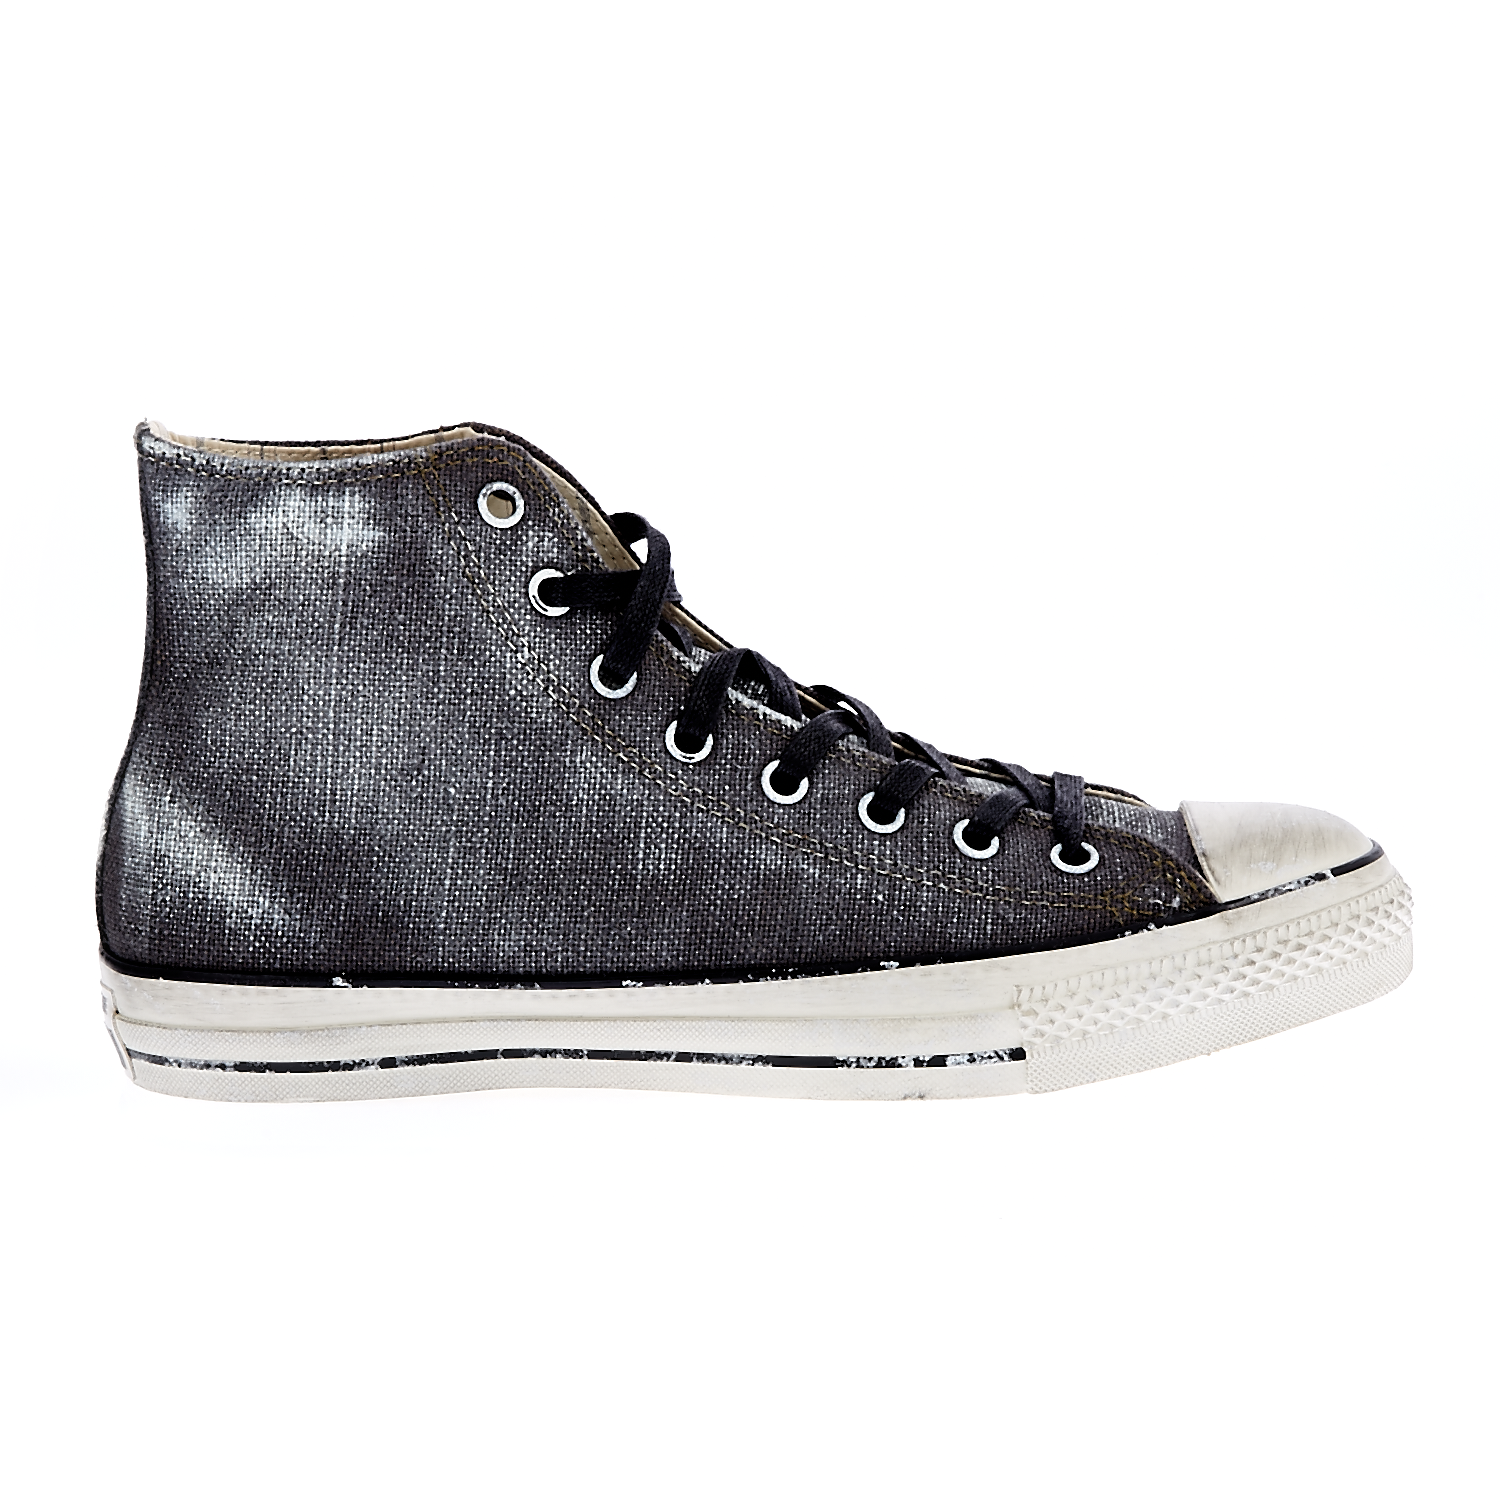 CONVERSE – Unisex παπούτσια Chuck Taylor All Star Hi ανθρακί-μαύρα